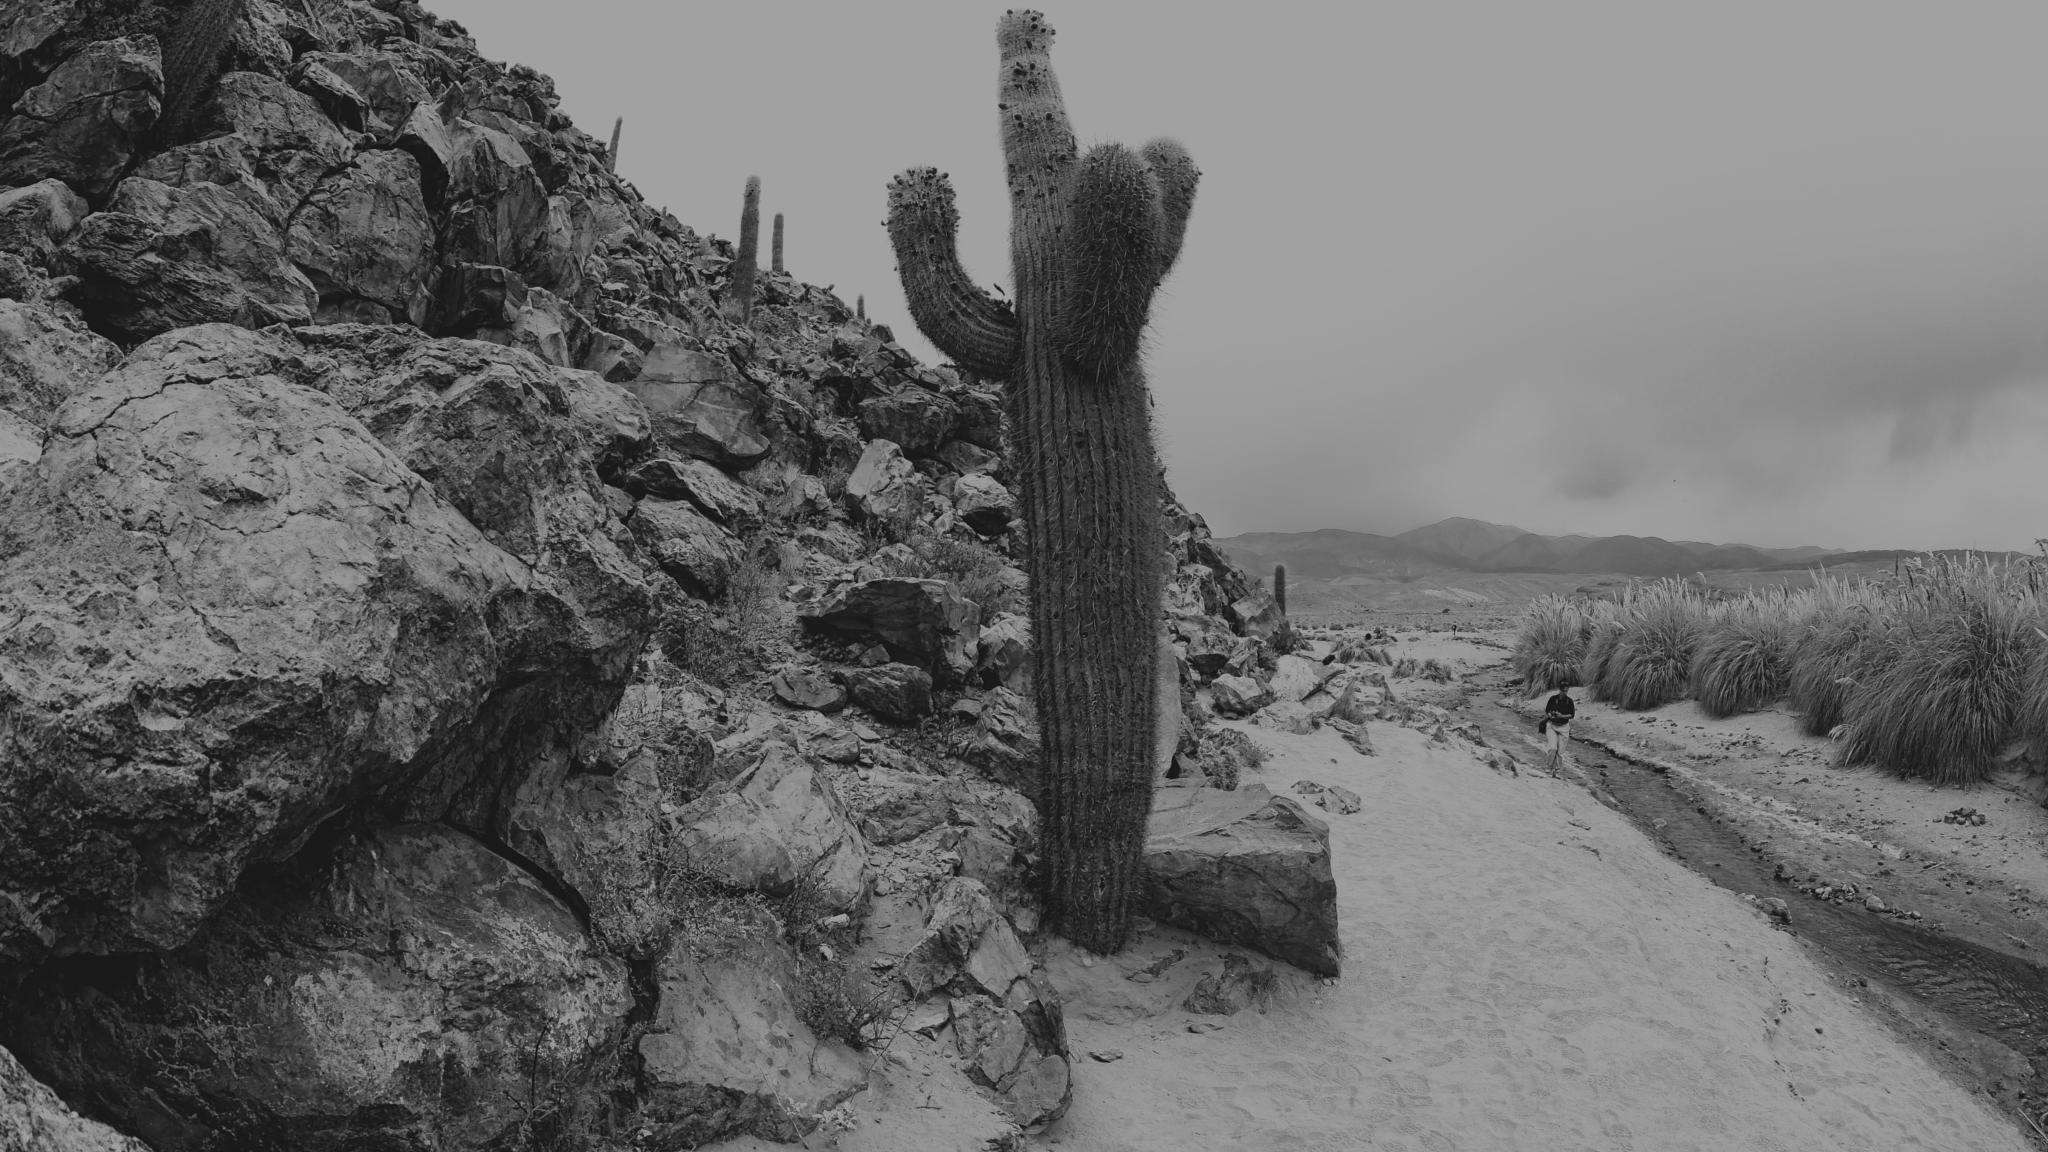 amazing huge cactus by andré figueiredo